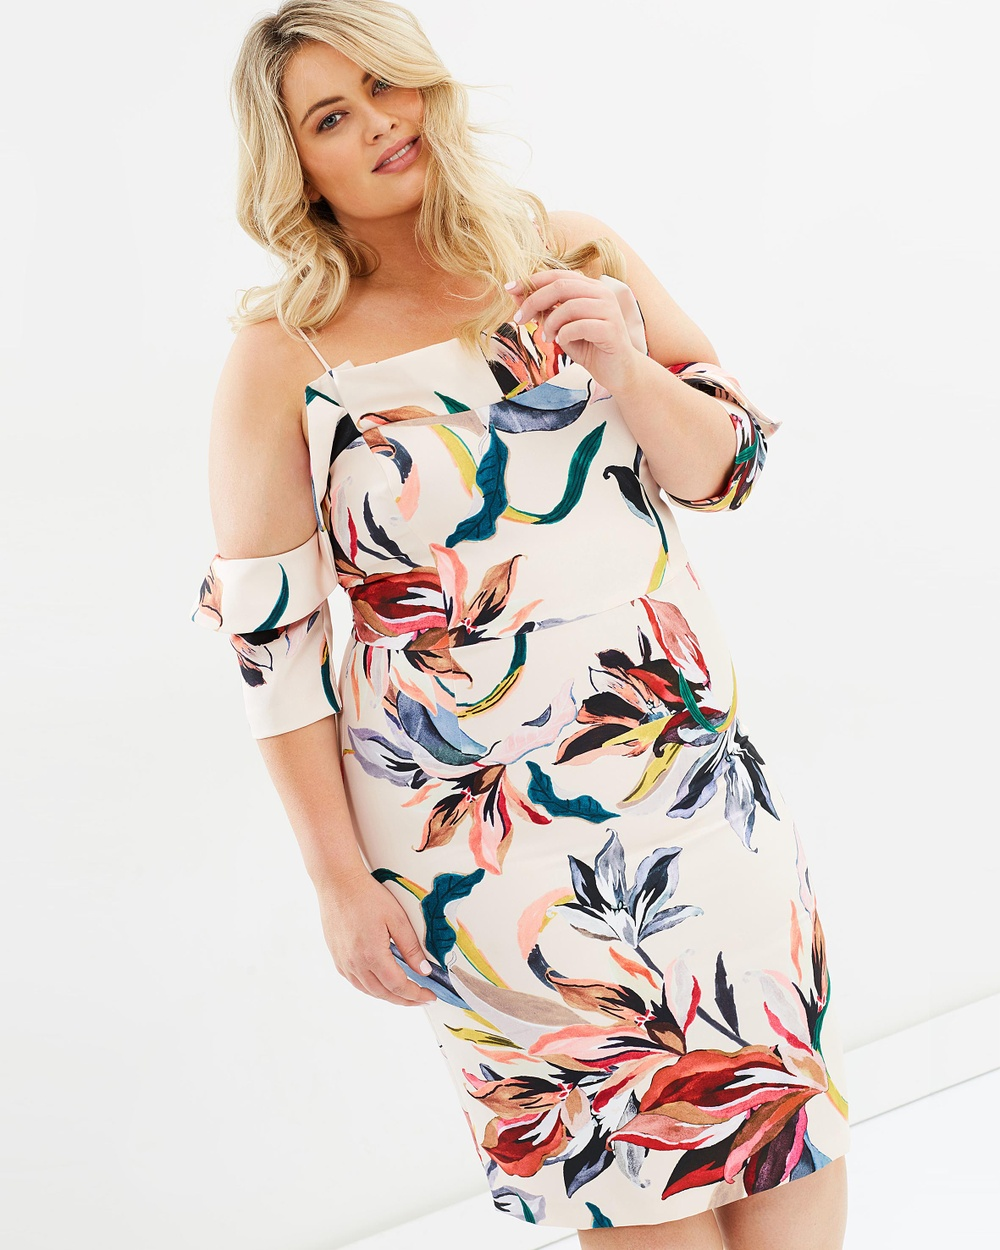 Cooper St CS CURVY Gigi Flounce Dress Dresses Print CS CURVY Gigi Flounce Dress